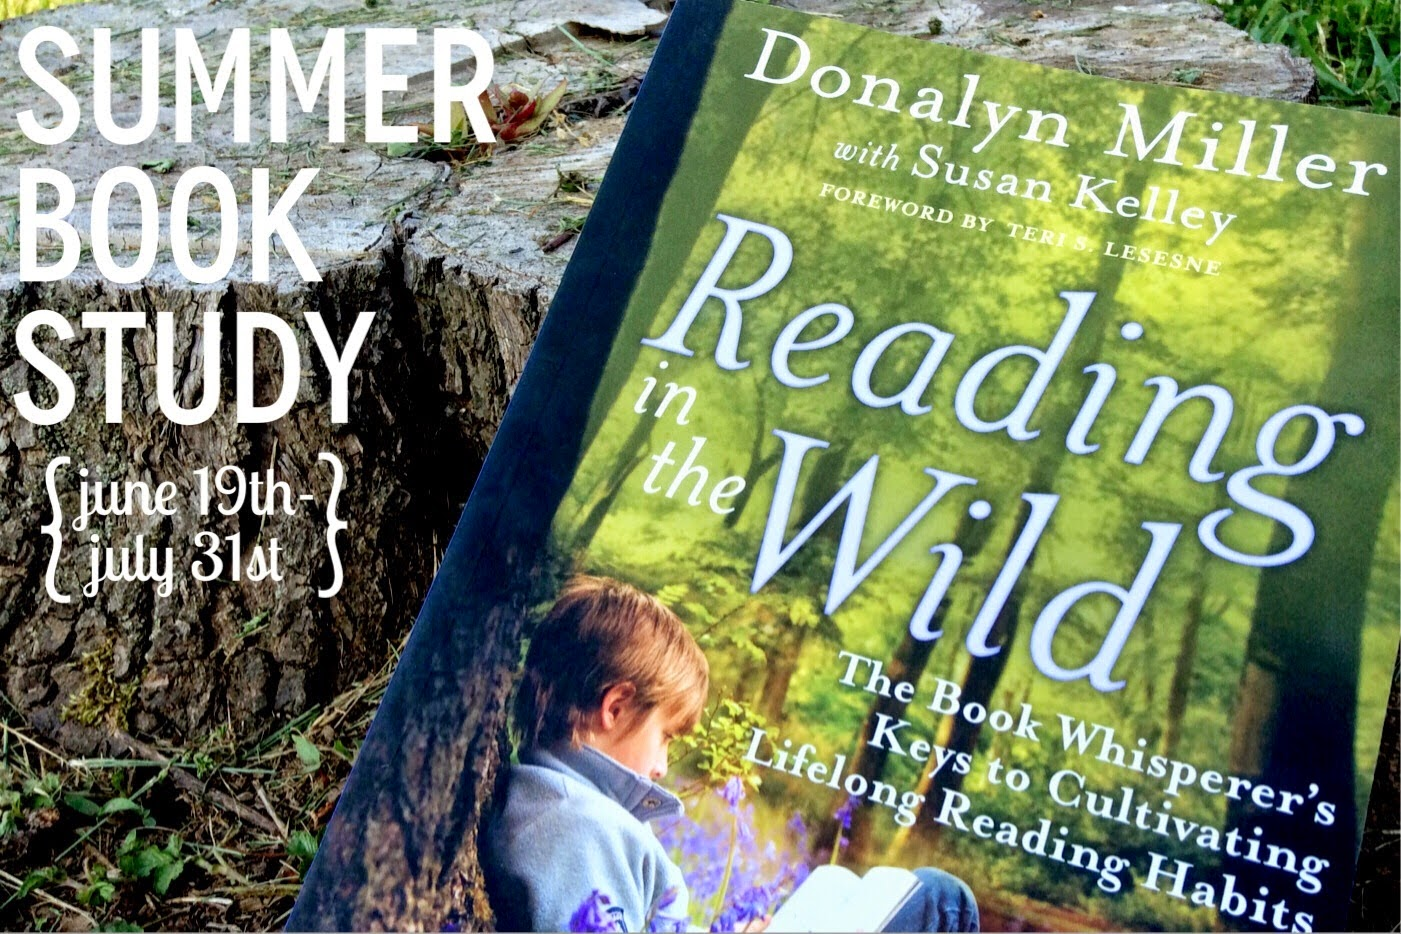 http://thebrownbagteacher.blogspot.com.es/2014/05/reading-in-wild-summer-book-study.html